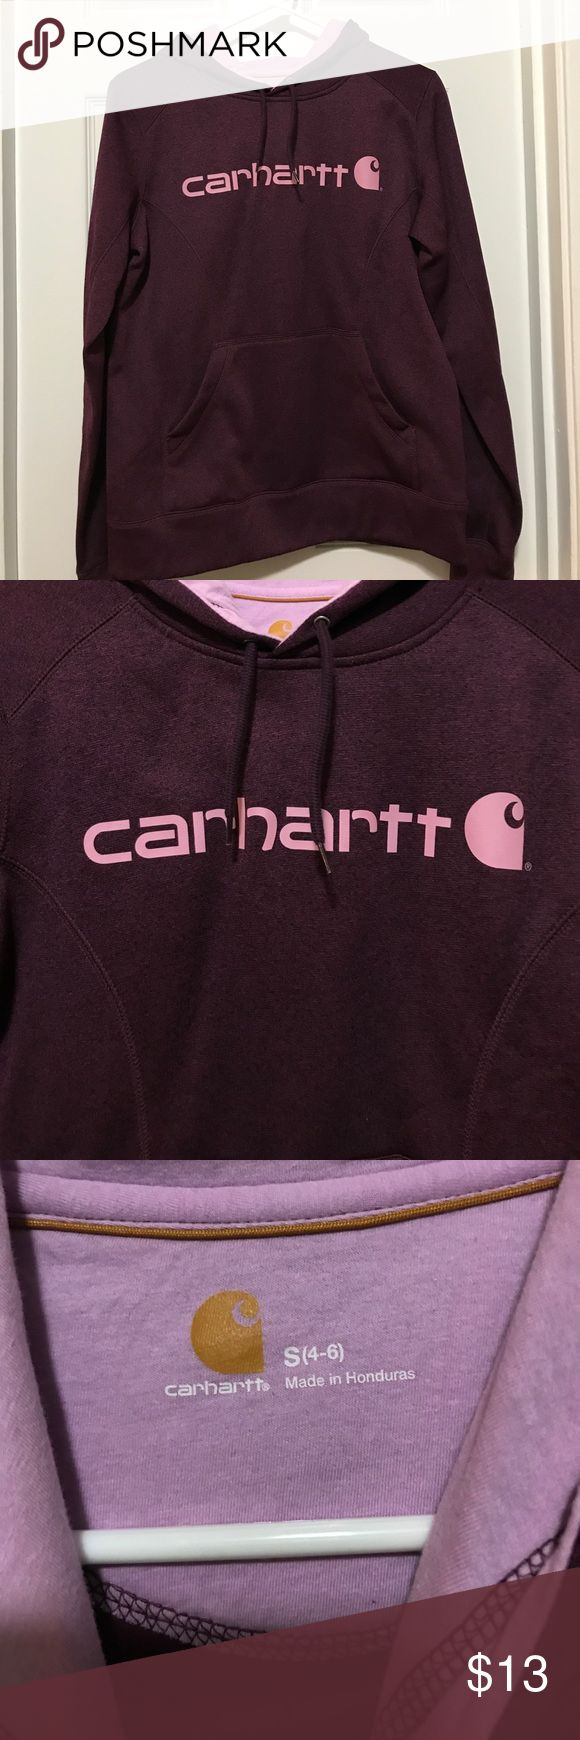 Carhart purple hoodie Very cute Carhartt purple and lavender hoodie! Used once. Excellent condition. Size small Carhartt Tops Sweatshirts & Hoodies